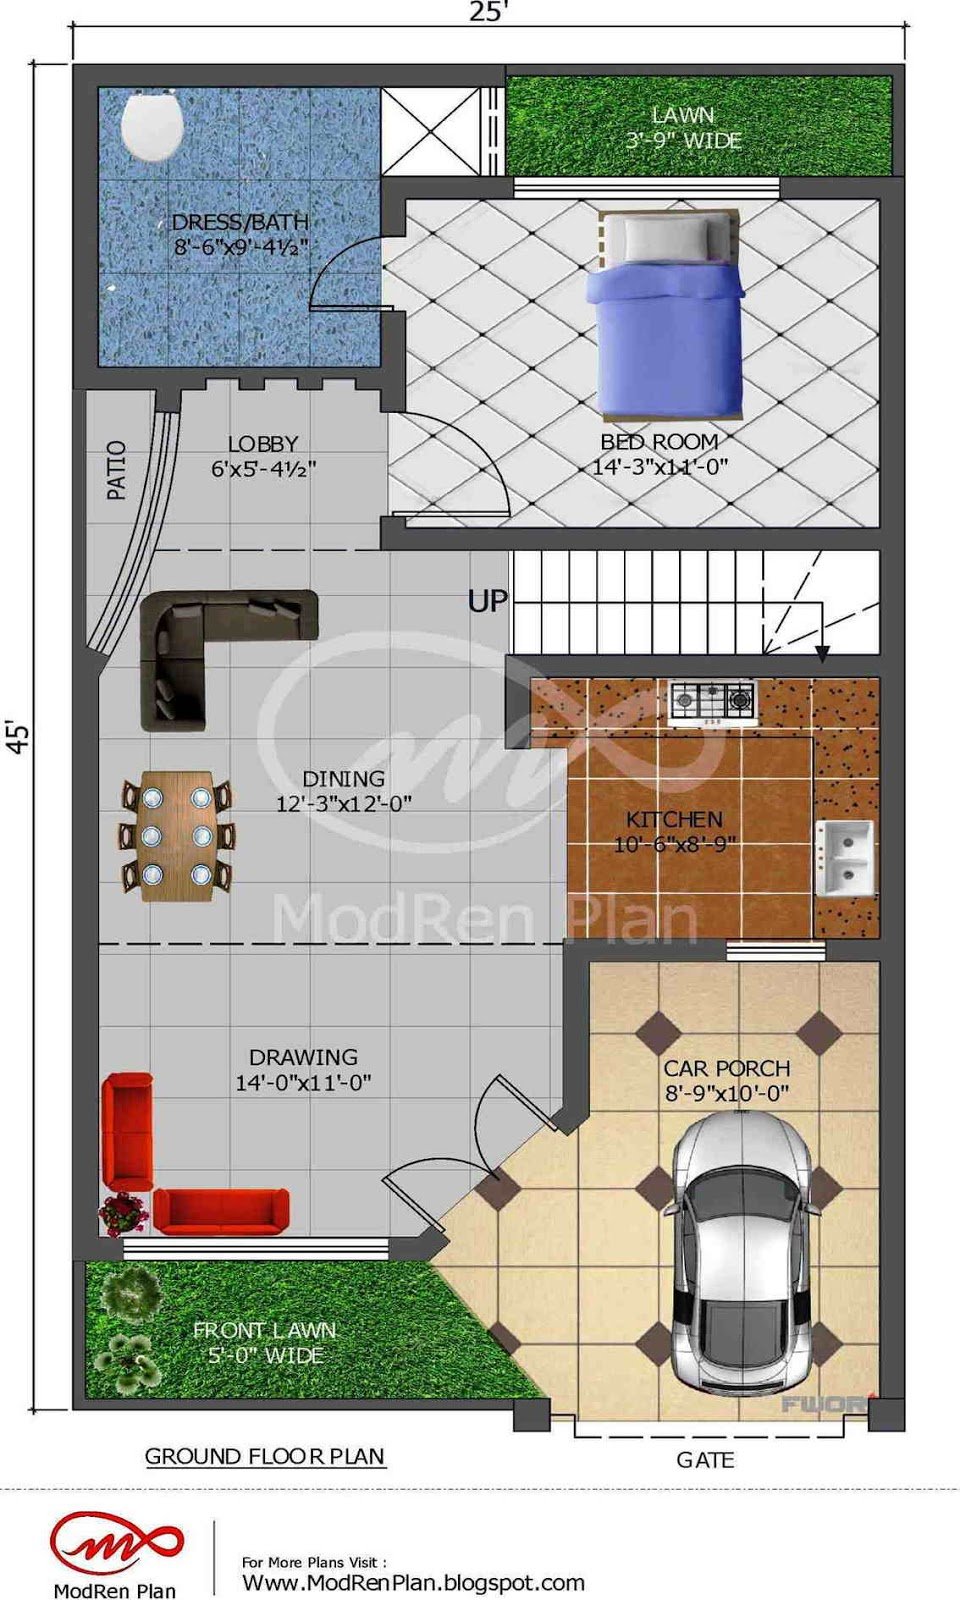 5 marla house plan 1200 sq ft 25x45 feet Create your house plan